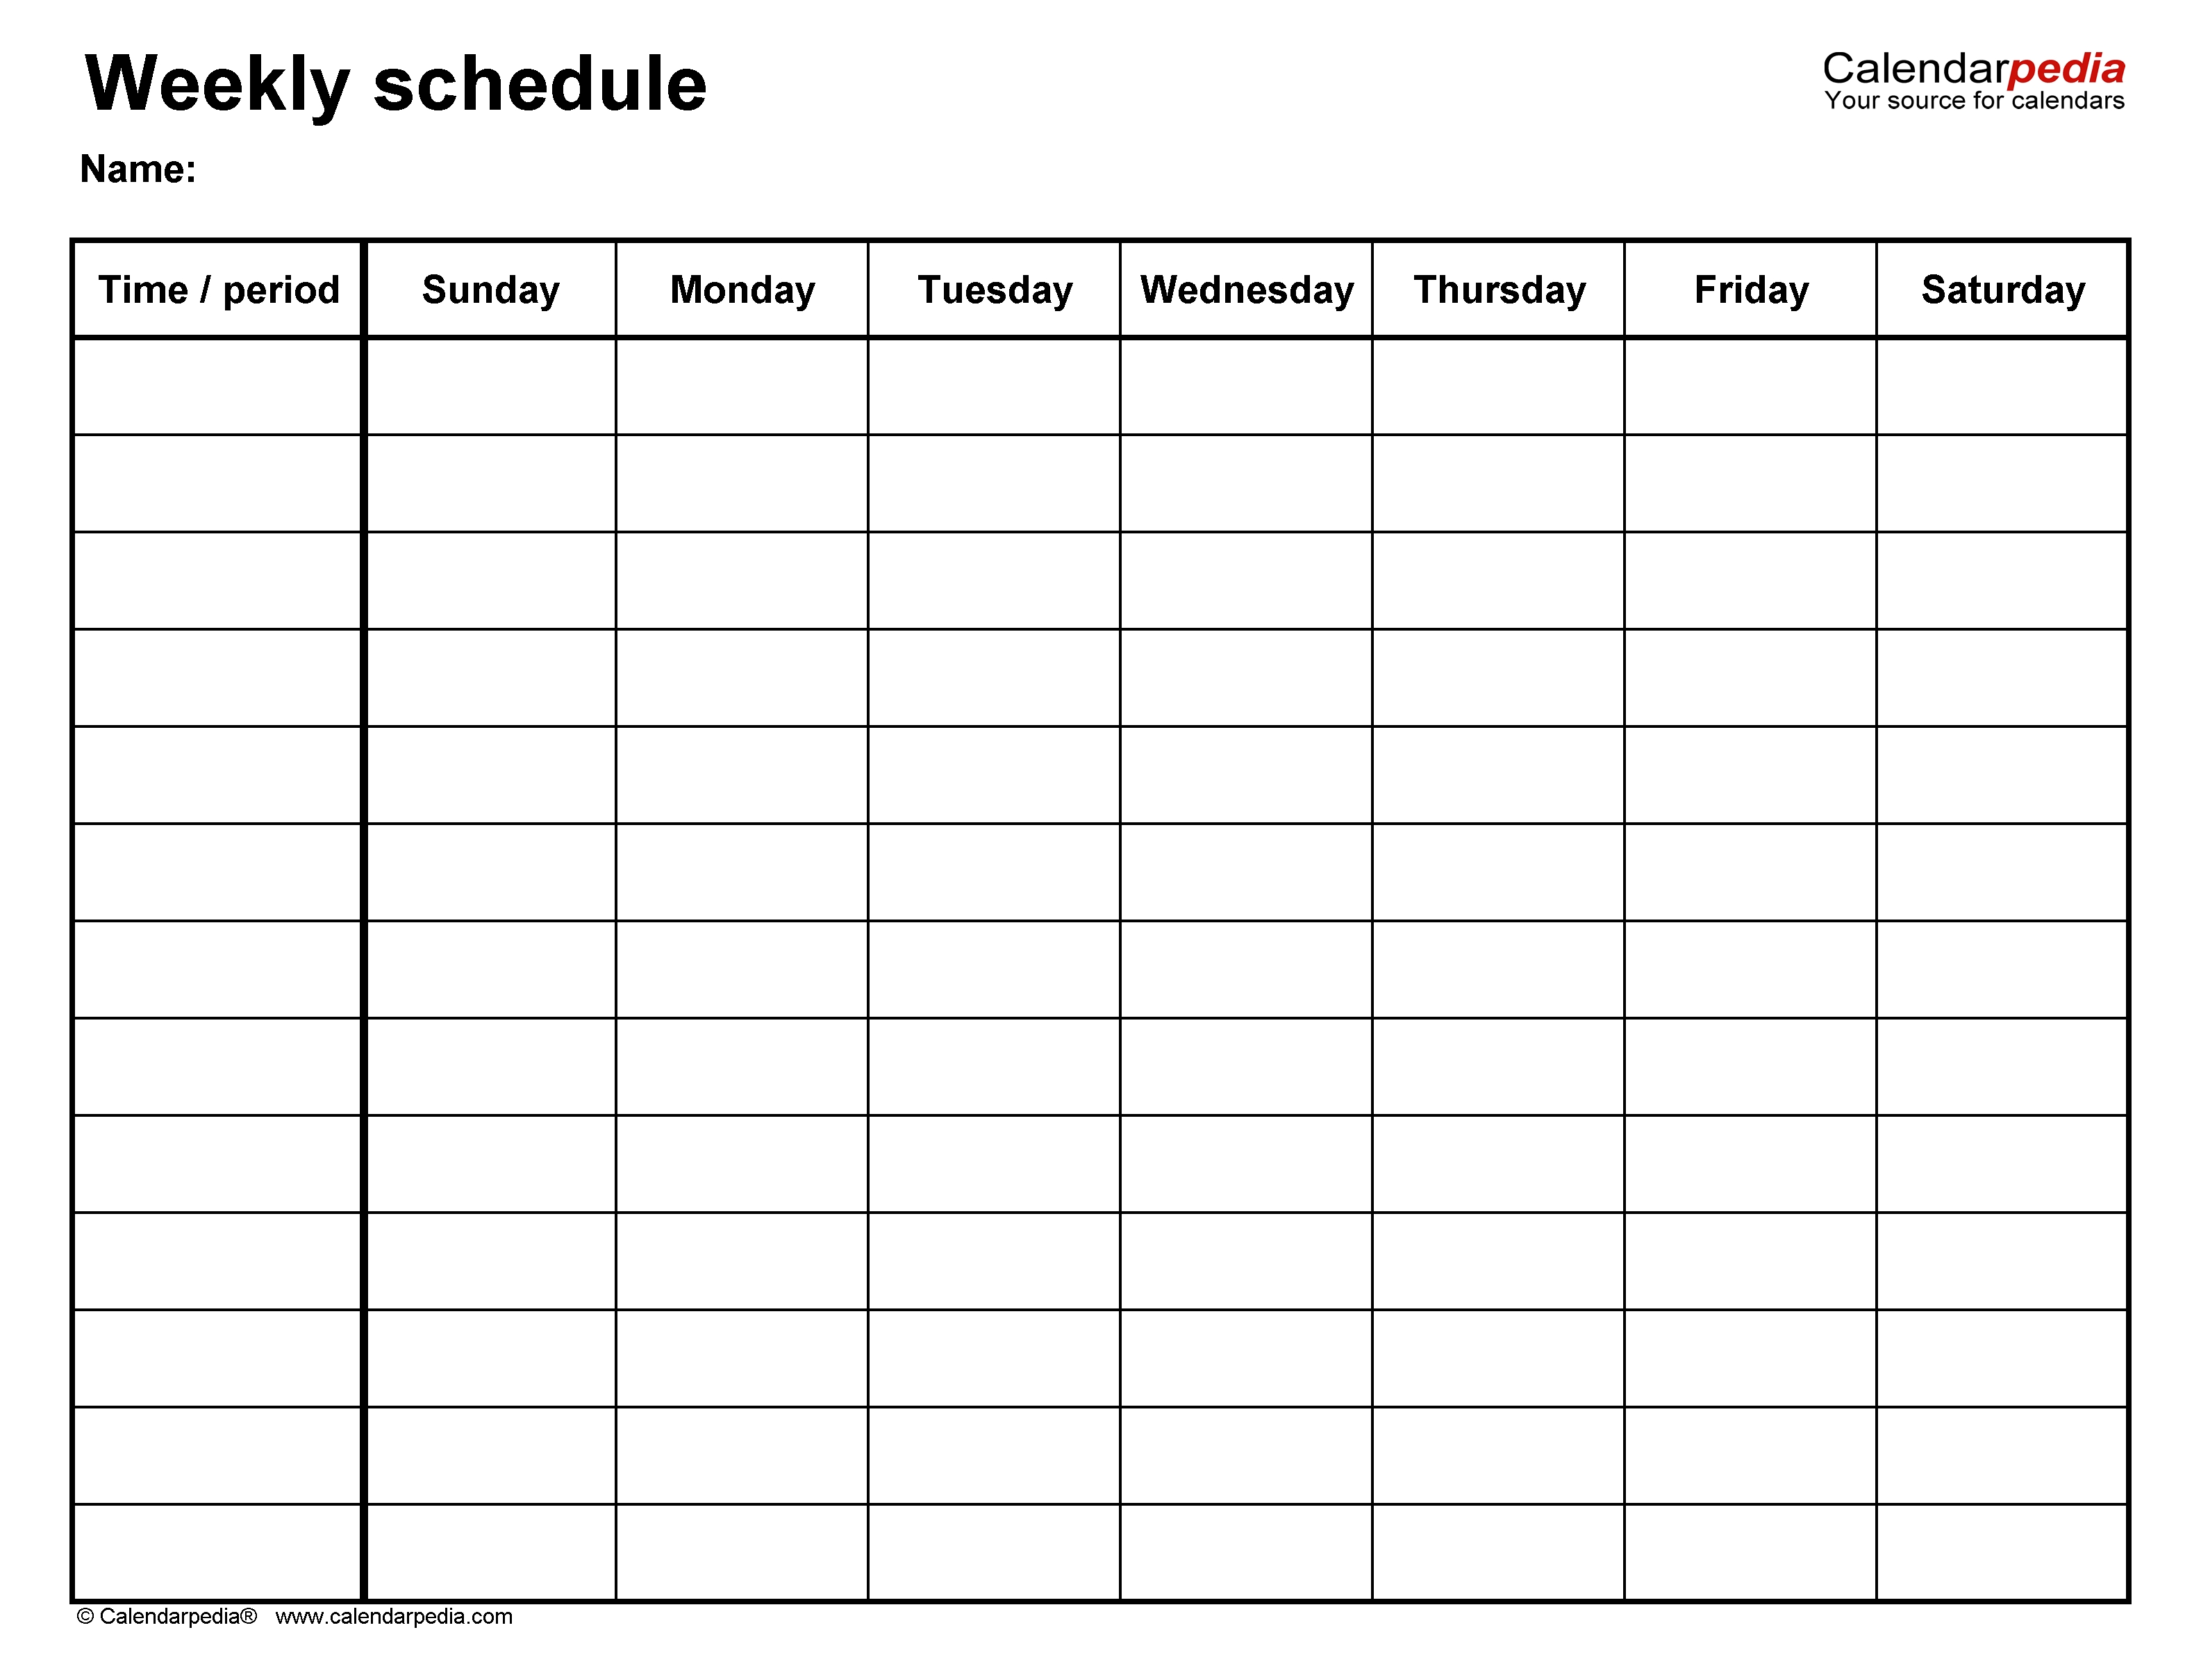 Free Weekly Schedule Templates For Excel - 18 Templates 7 Day Week Calendar Template